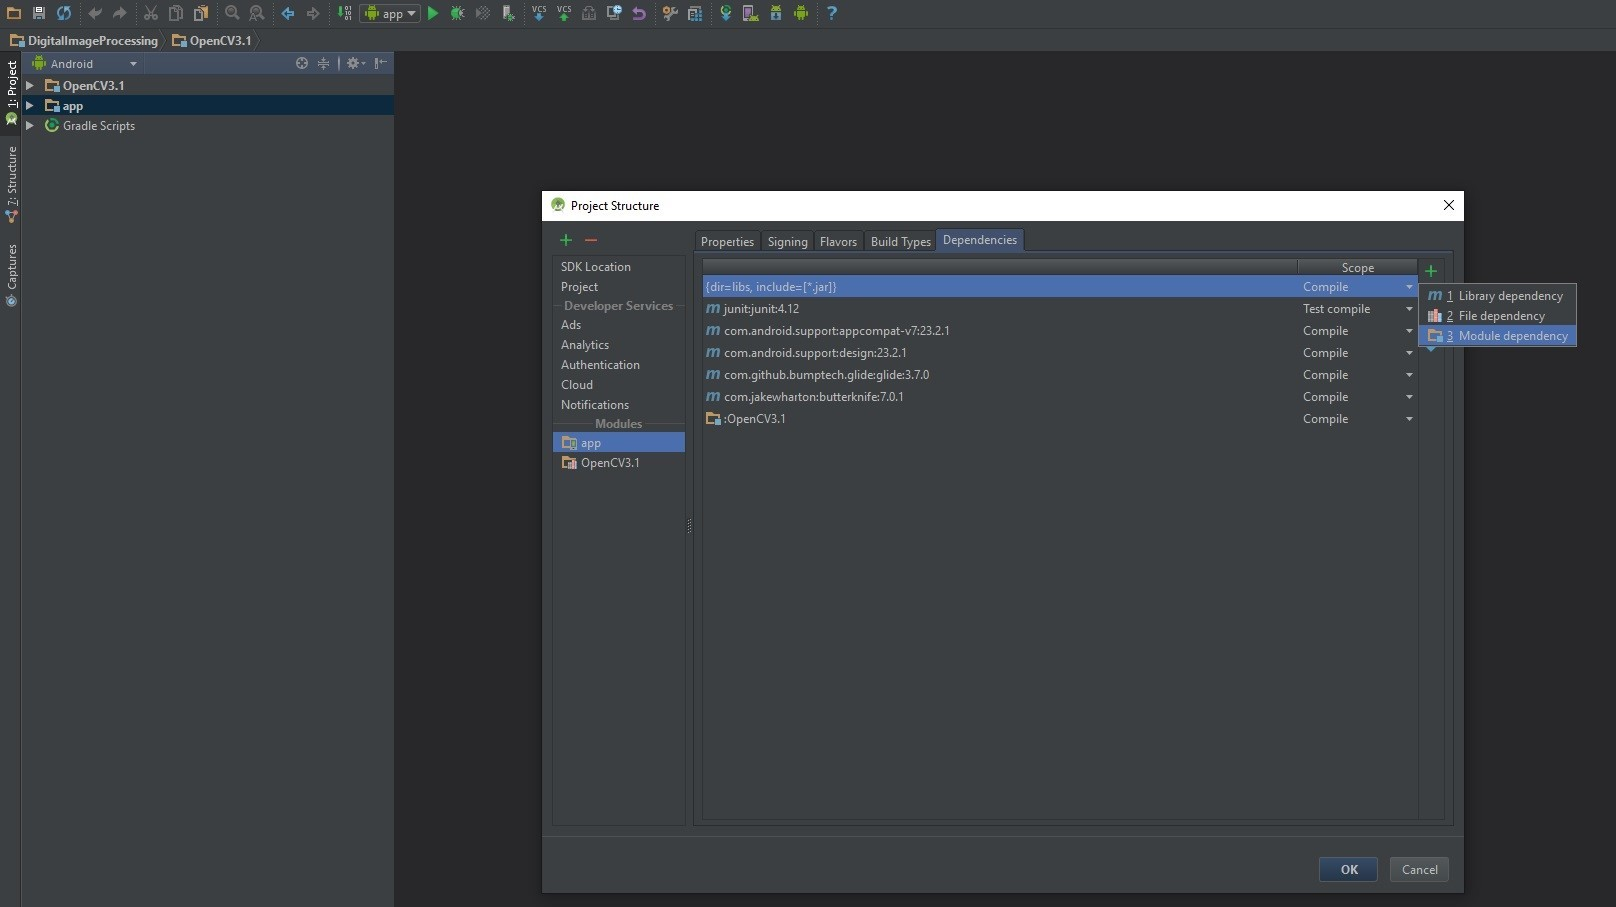 Check out: OpenCV in Android Studio project - Zaven | Blog